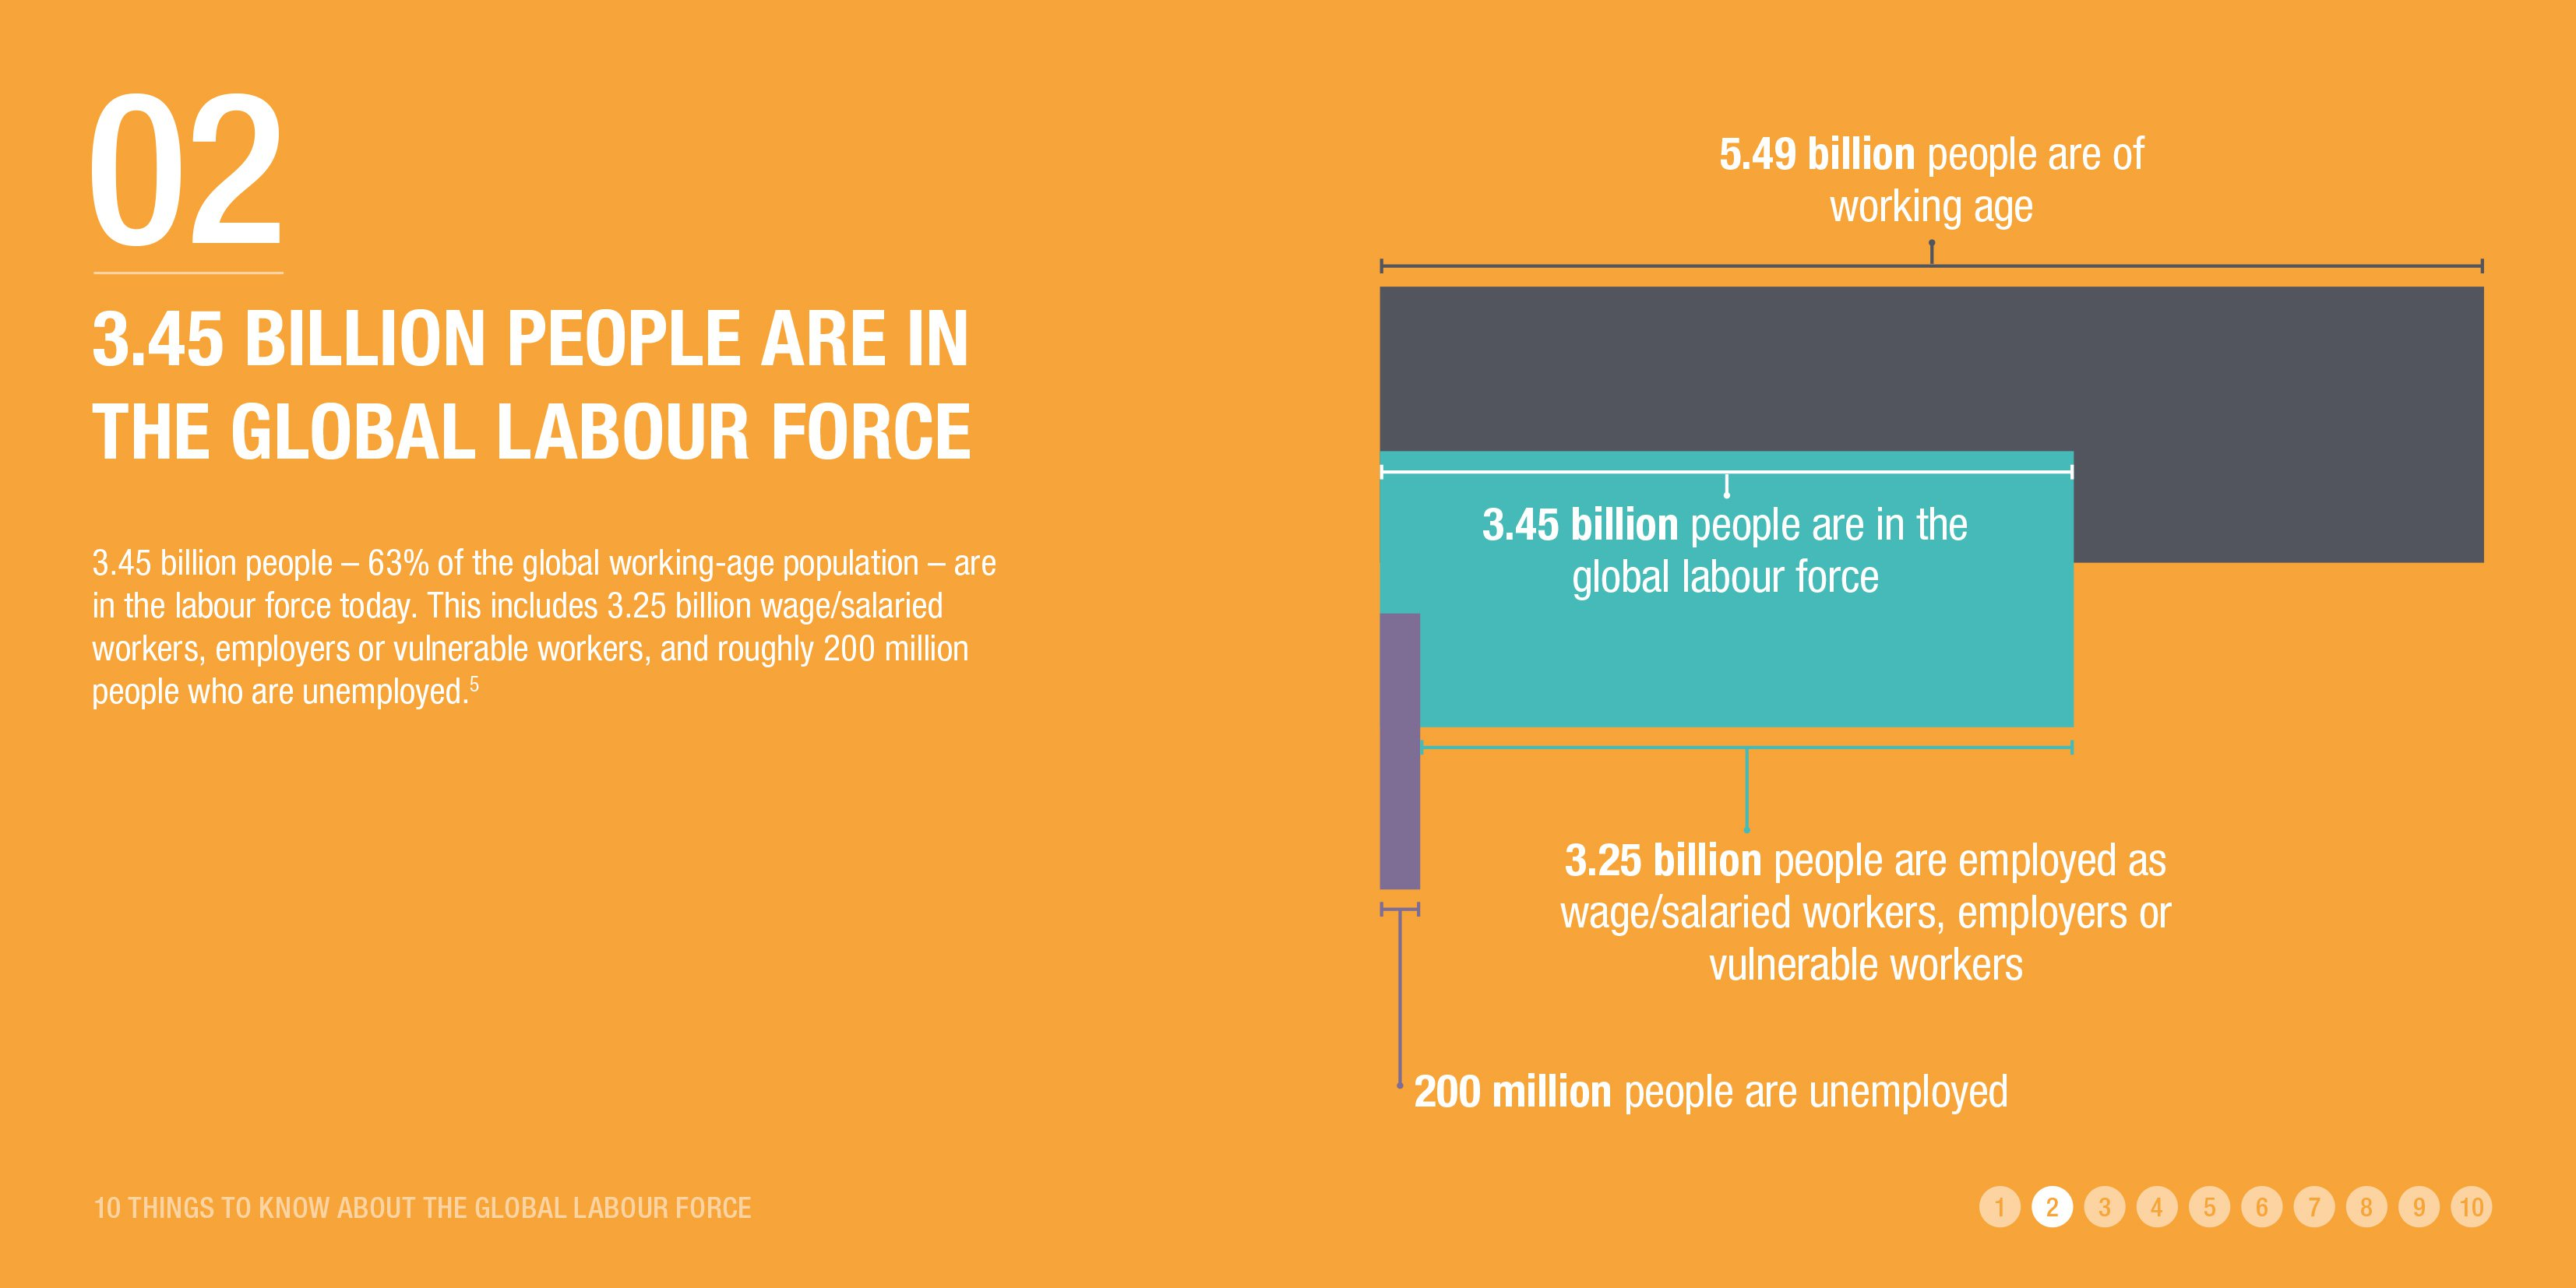 3.45 billion people are in the global labour force